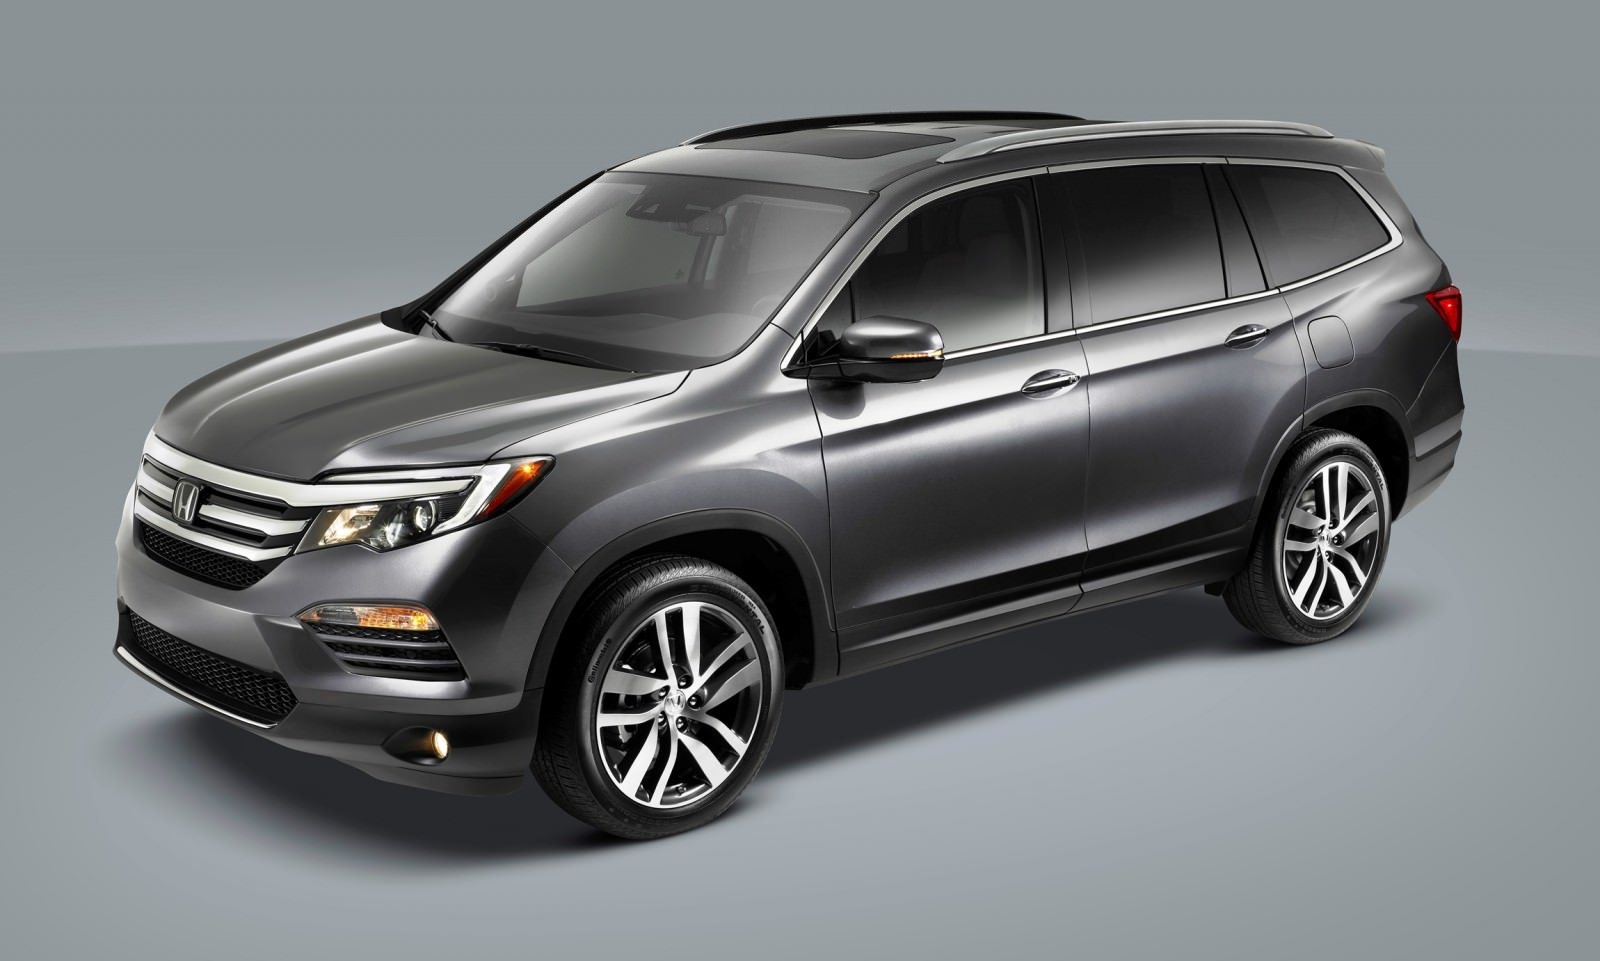 2016 honda pilot. Black Bedroom Furniture Sets. Home Design Ideas